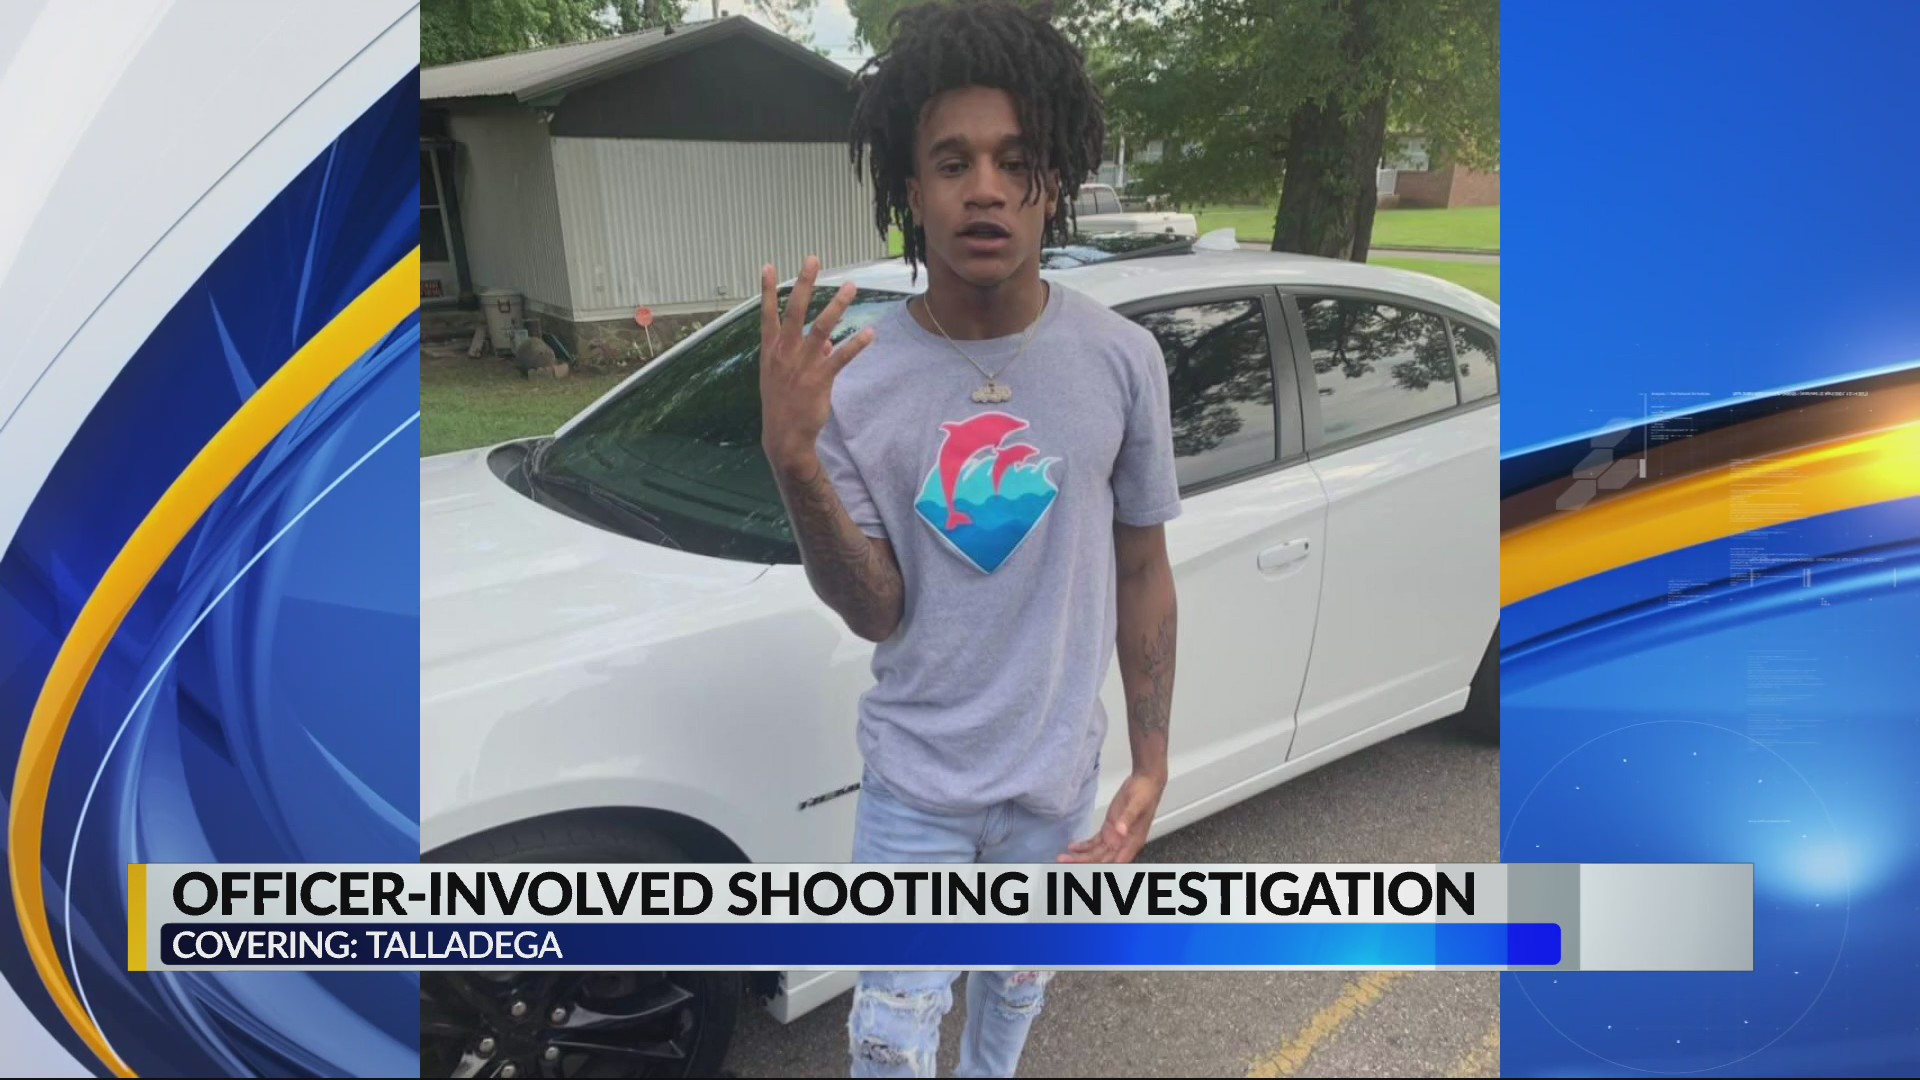 Teen killed following off-duty officer-involved shooting in